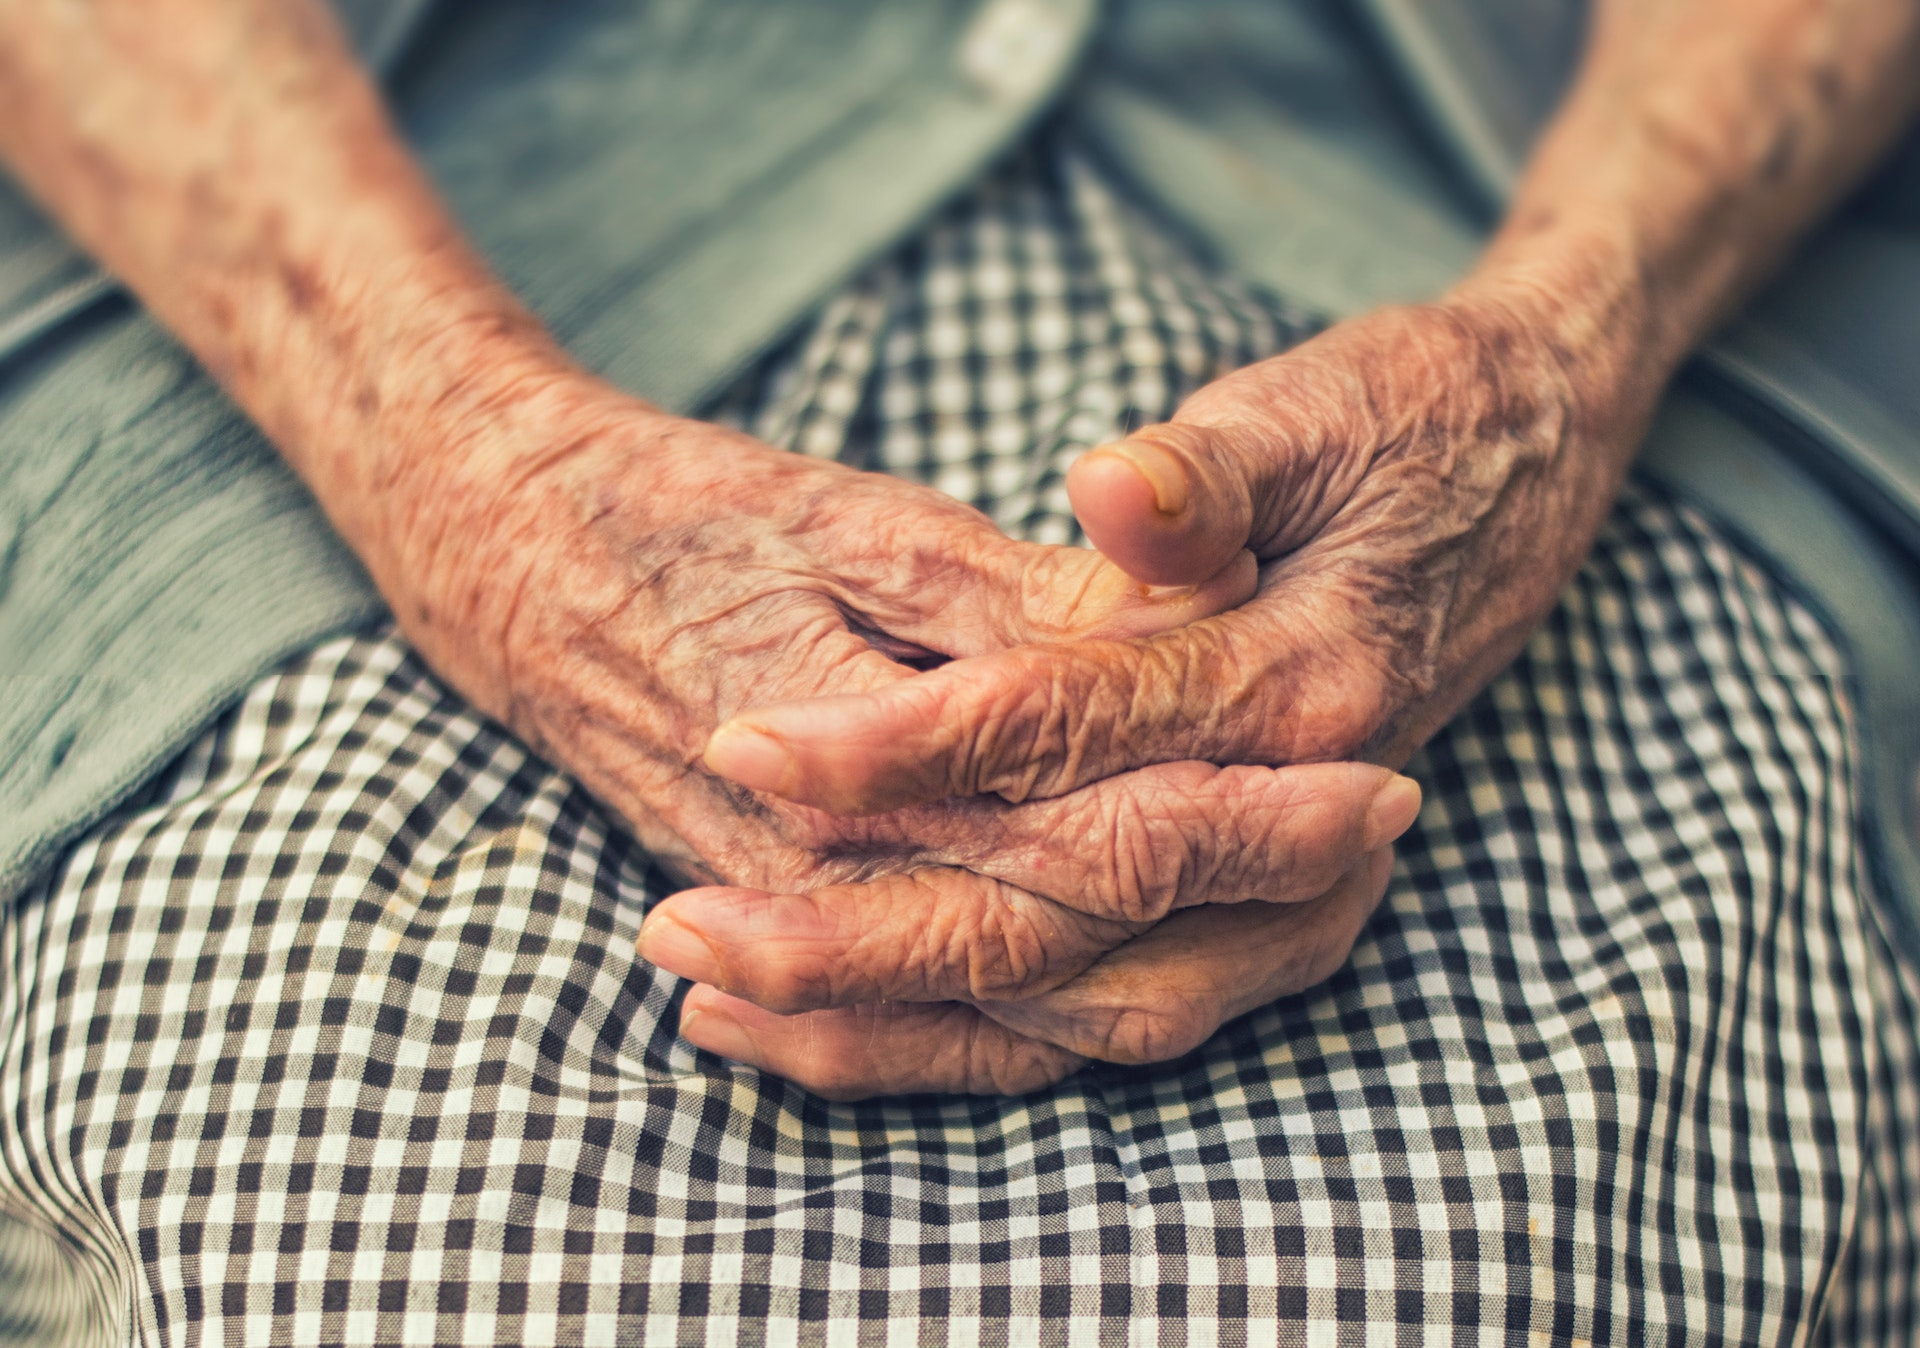 As the coronavirus has killed tens of thousands at senior care homes, strict measures have been instituted to help curb its spread. But those precautions have prevented family members from visiting their loved ones in person, causing frustration and pain. (Photo/Christian Newman)